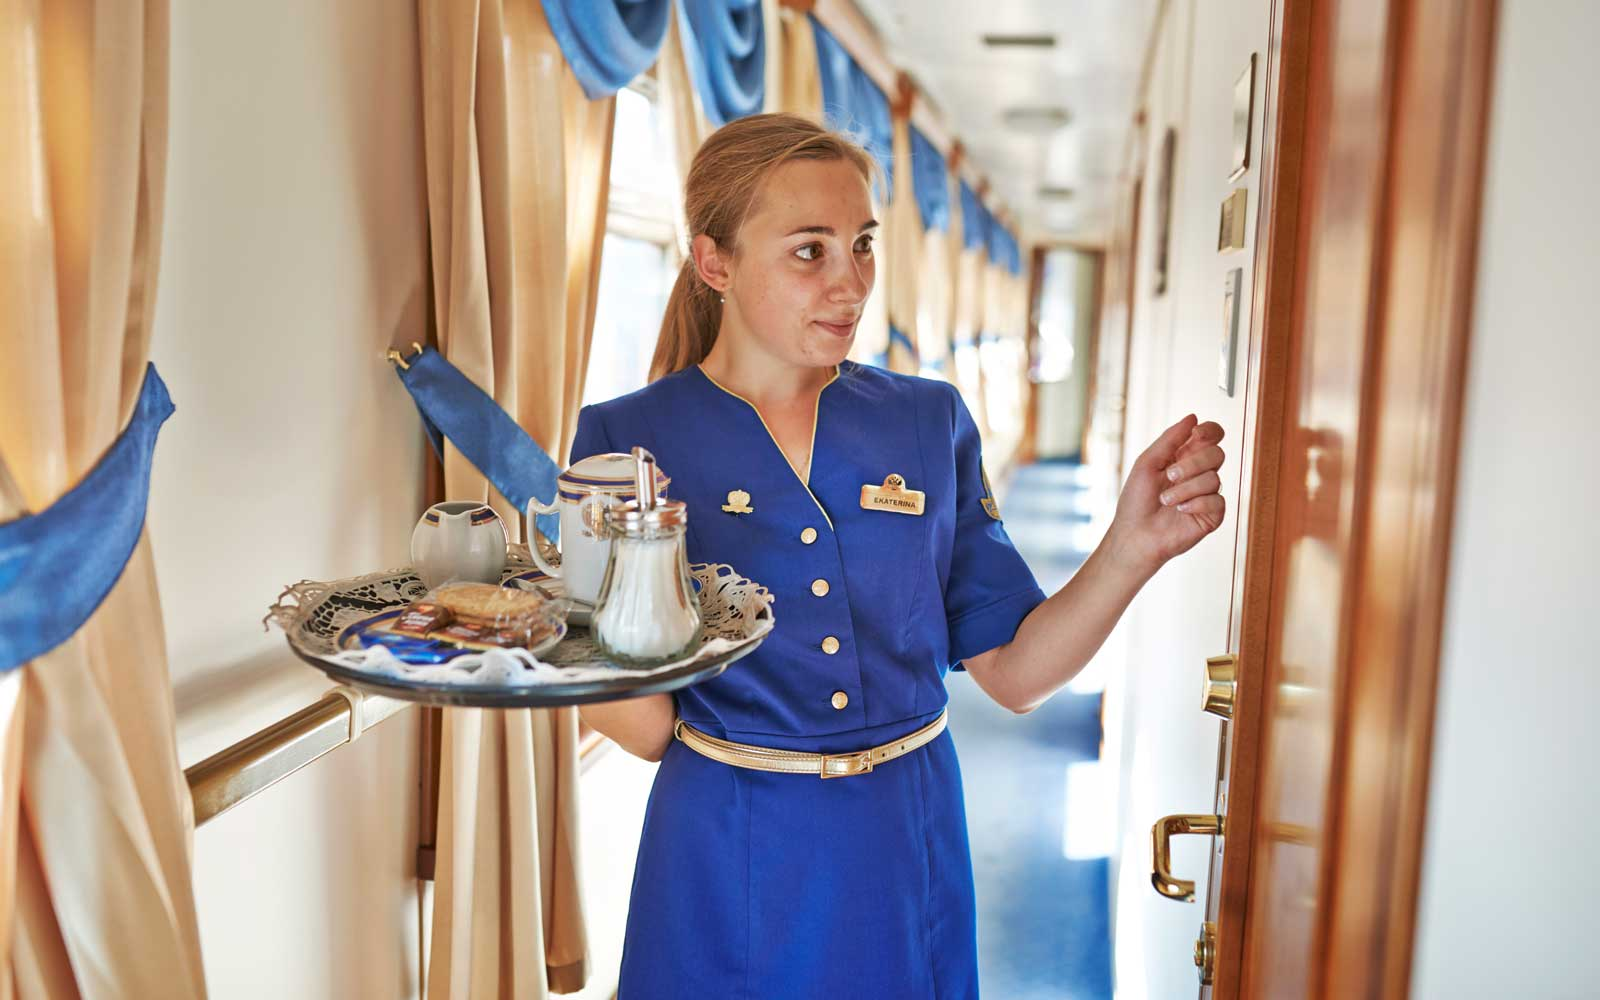 Room service at the luxury Trans-siberian express train